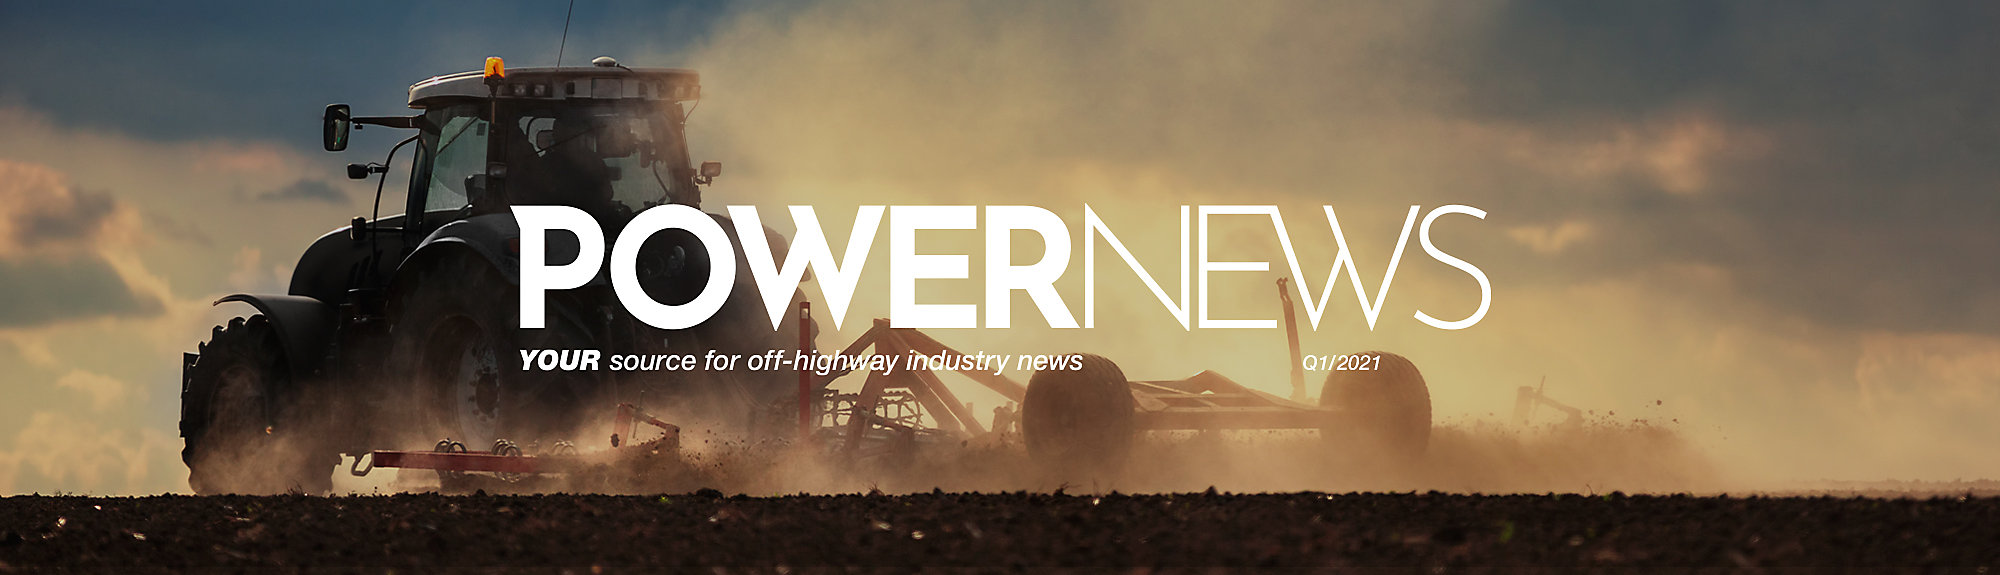 Powernews - Your source for off-highway industry news